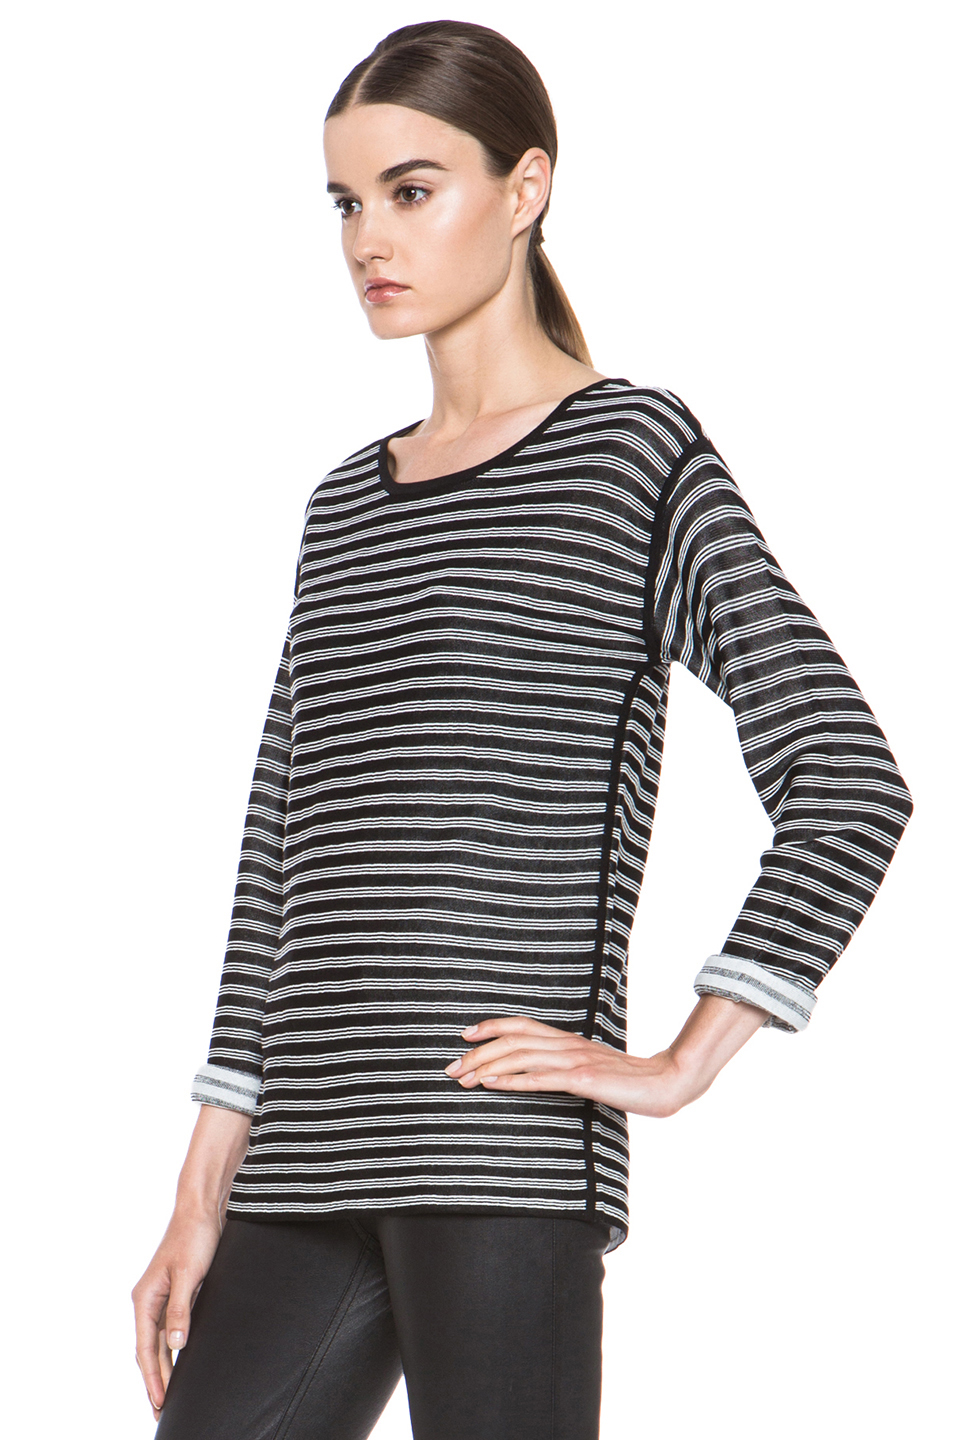 T by Alexander Wang|Stripe Knit Top in Black & White